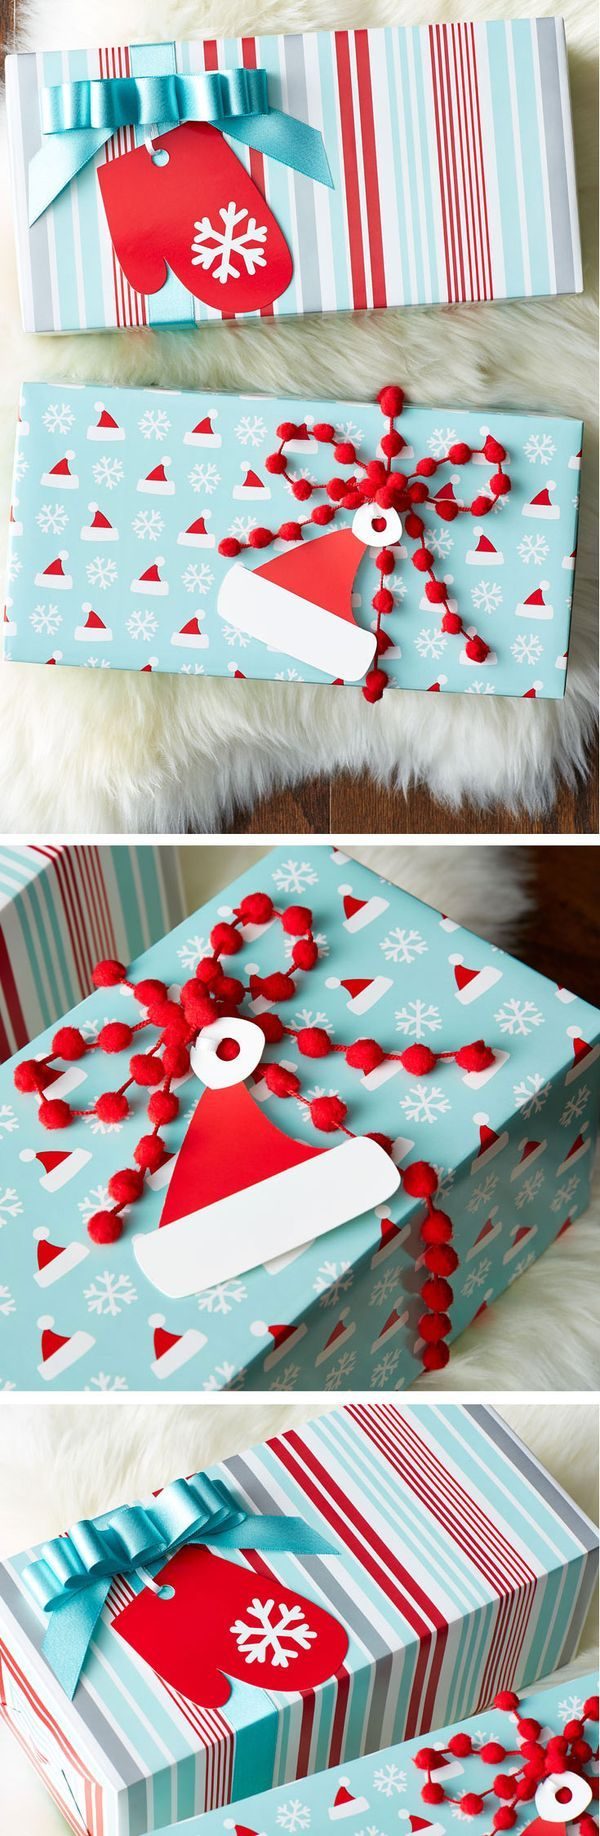 Take the tags to the next level with clever and cute additions from our Gift Wrap Wonderland!